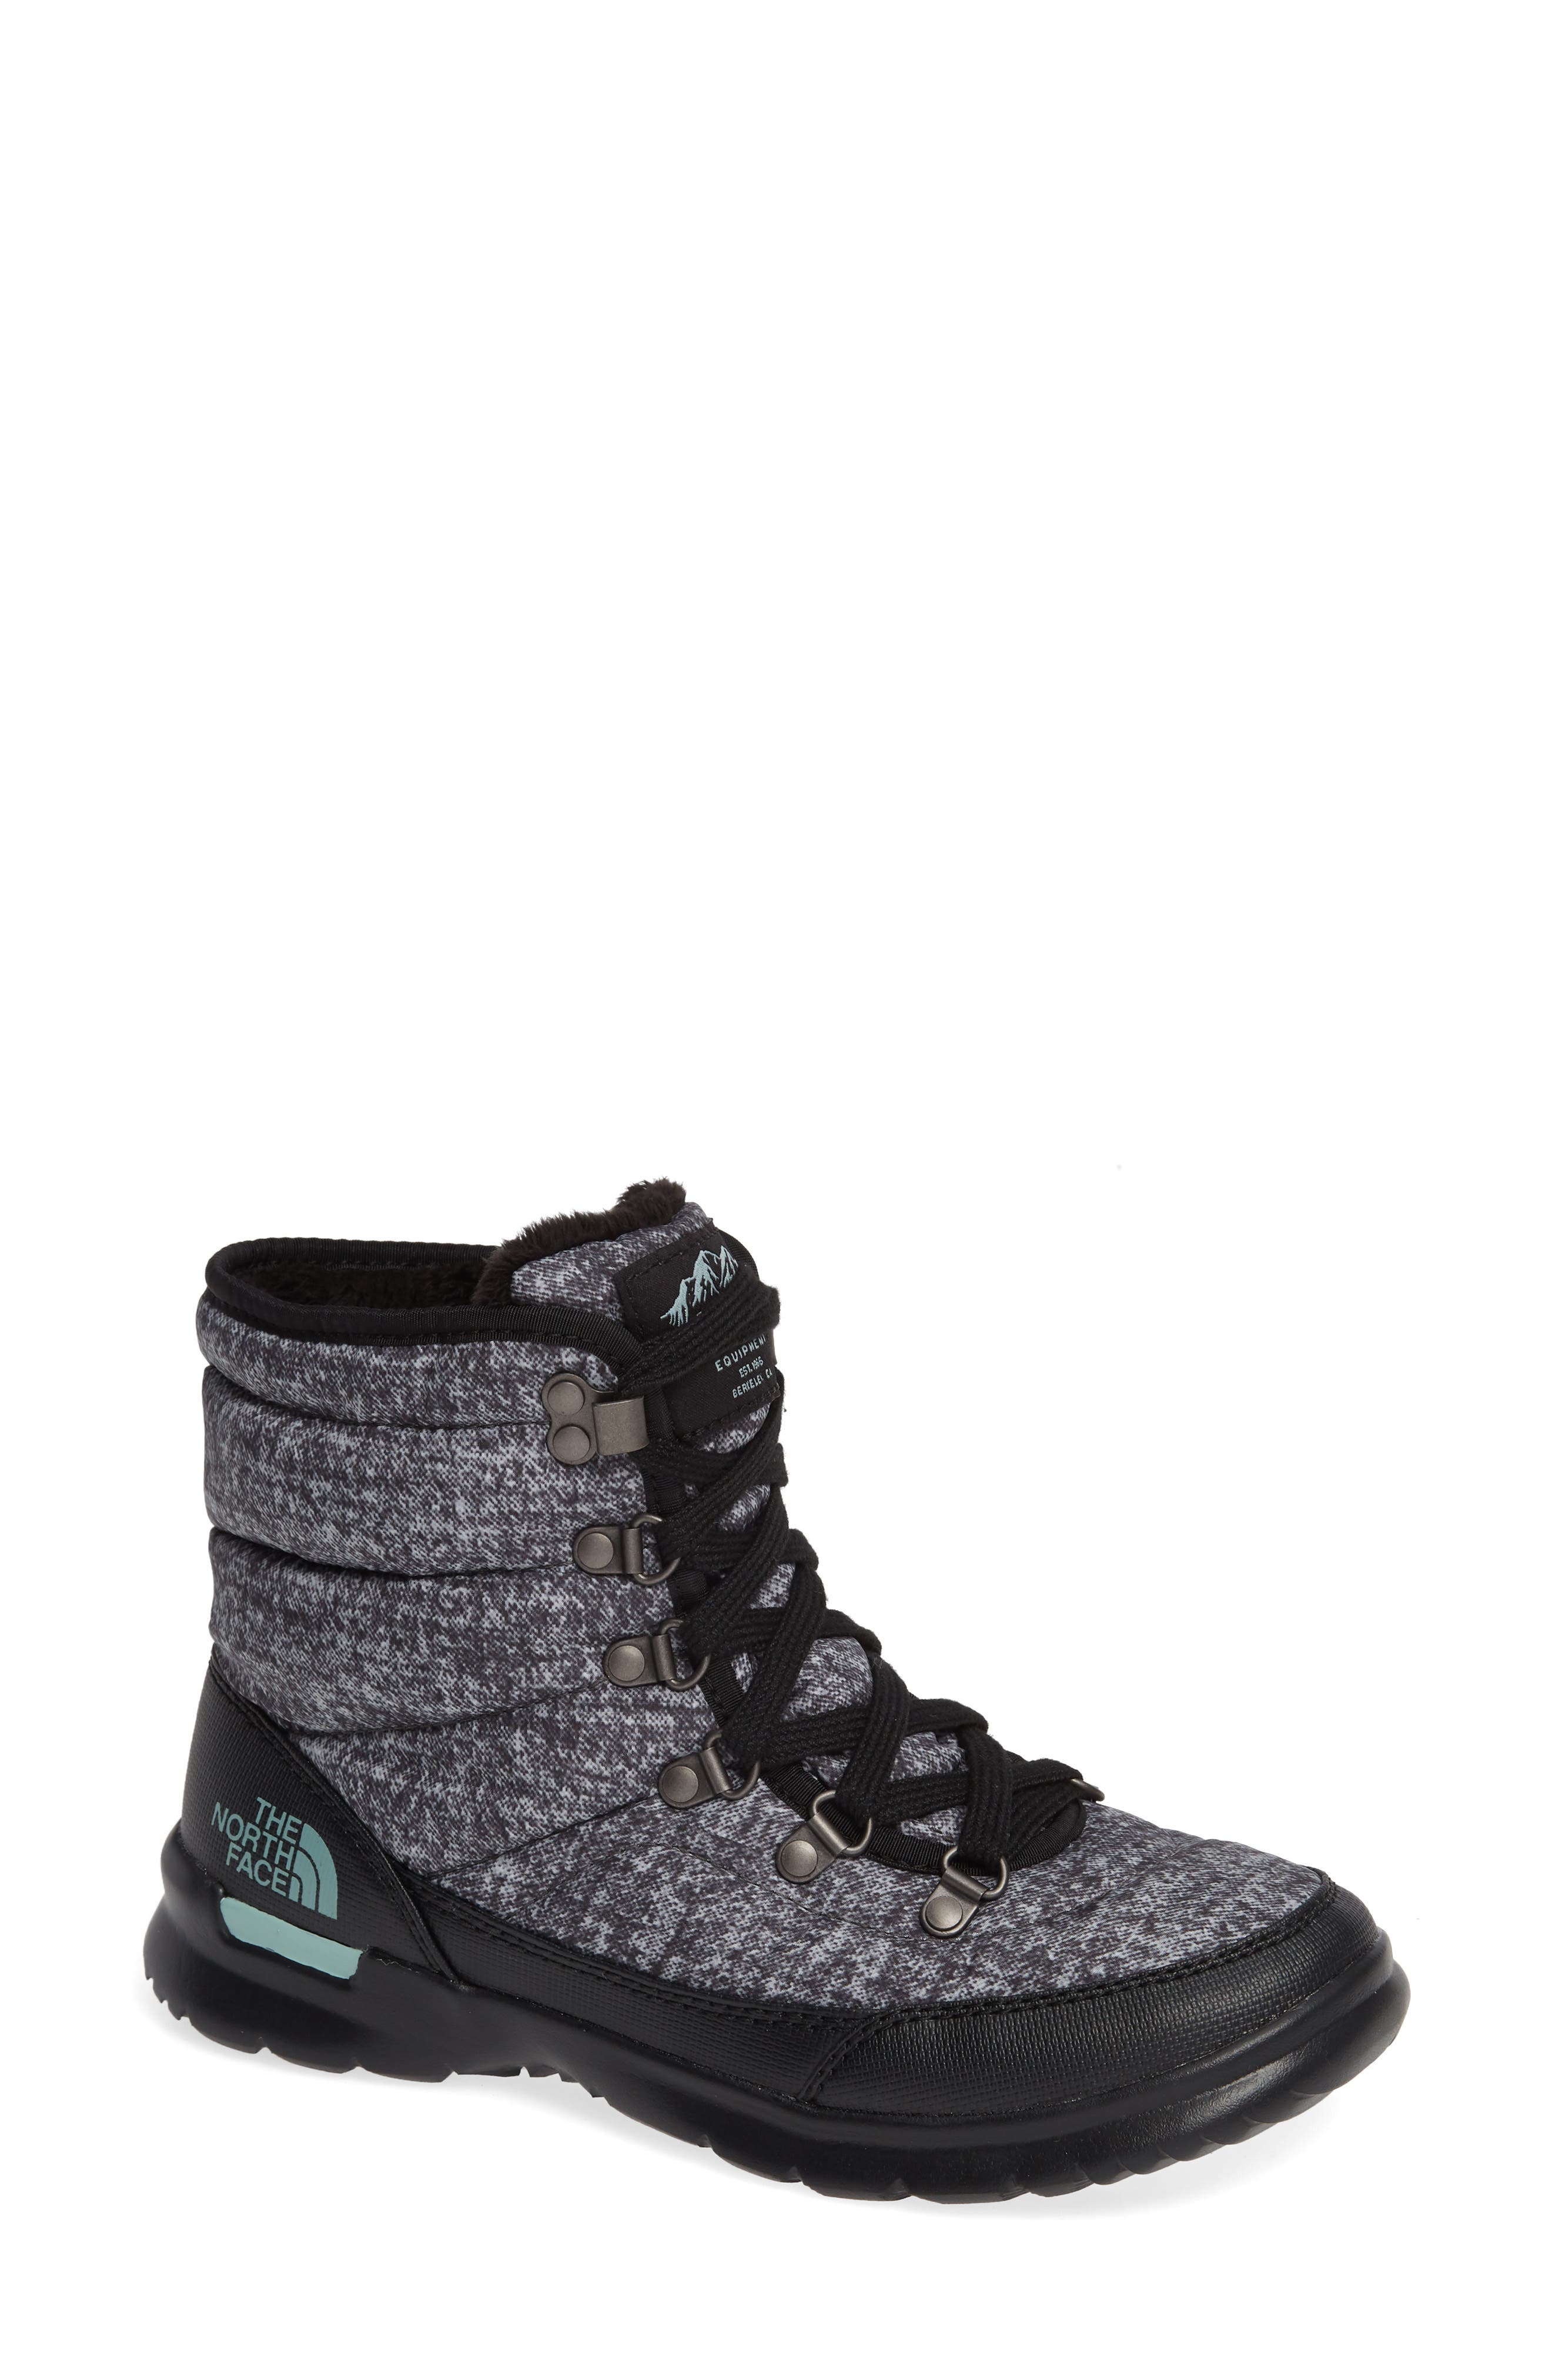 Lace II ThermoBall<sup>™</sup> Insulated Winter Boot,                             Main thumbnail 1, color,                             HOUNDS TOOTH PRINT/ BLUE HAZE